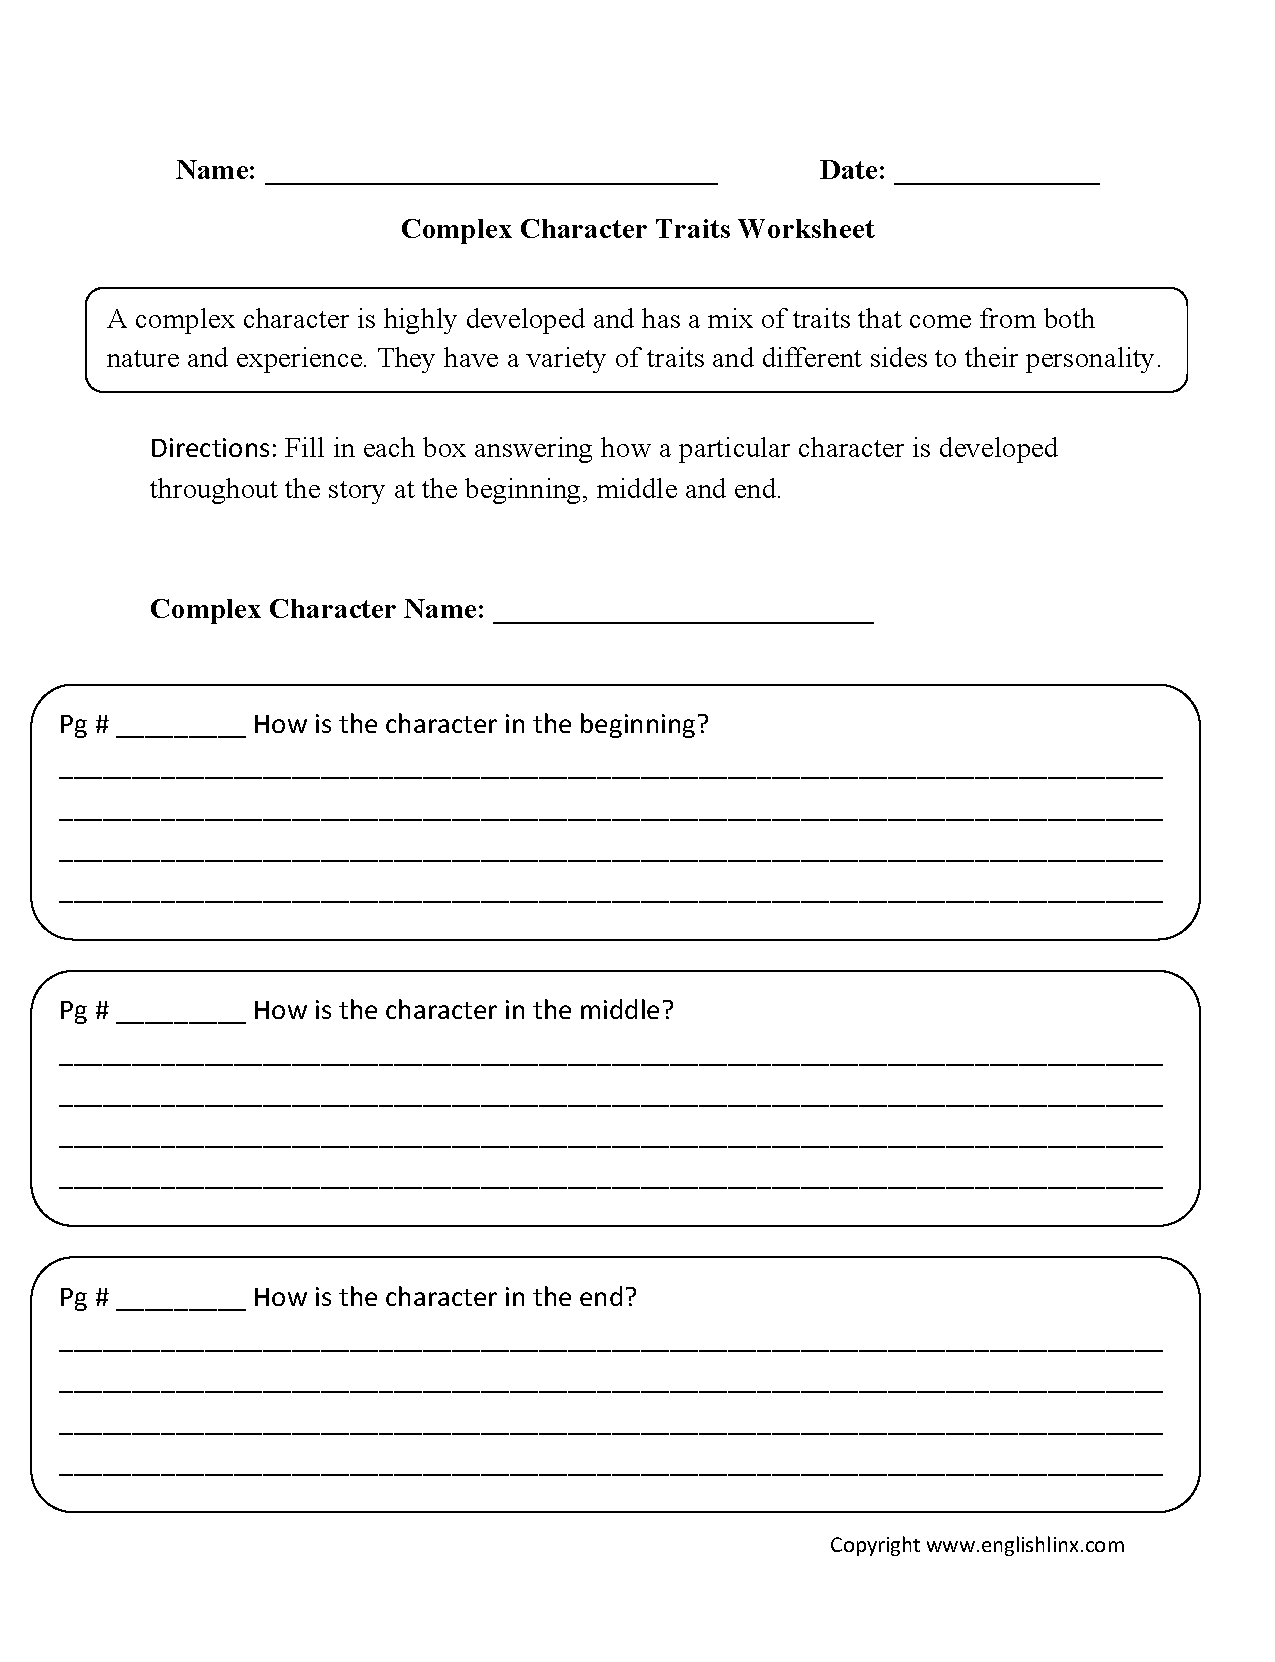 worksheet Conjunctive Adverbs Worksheet character traits worksheets free library download and workshsheets evidence template